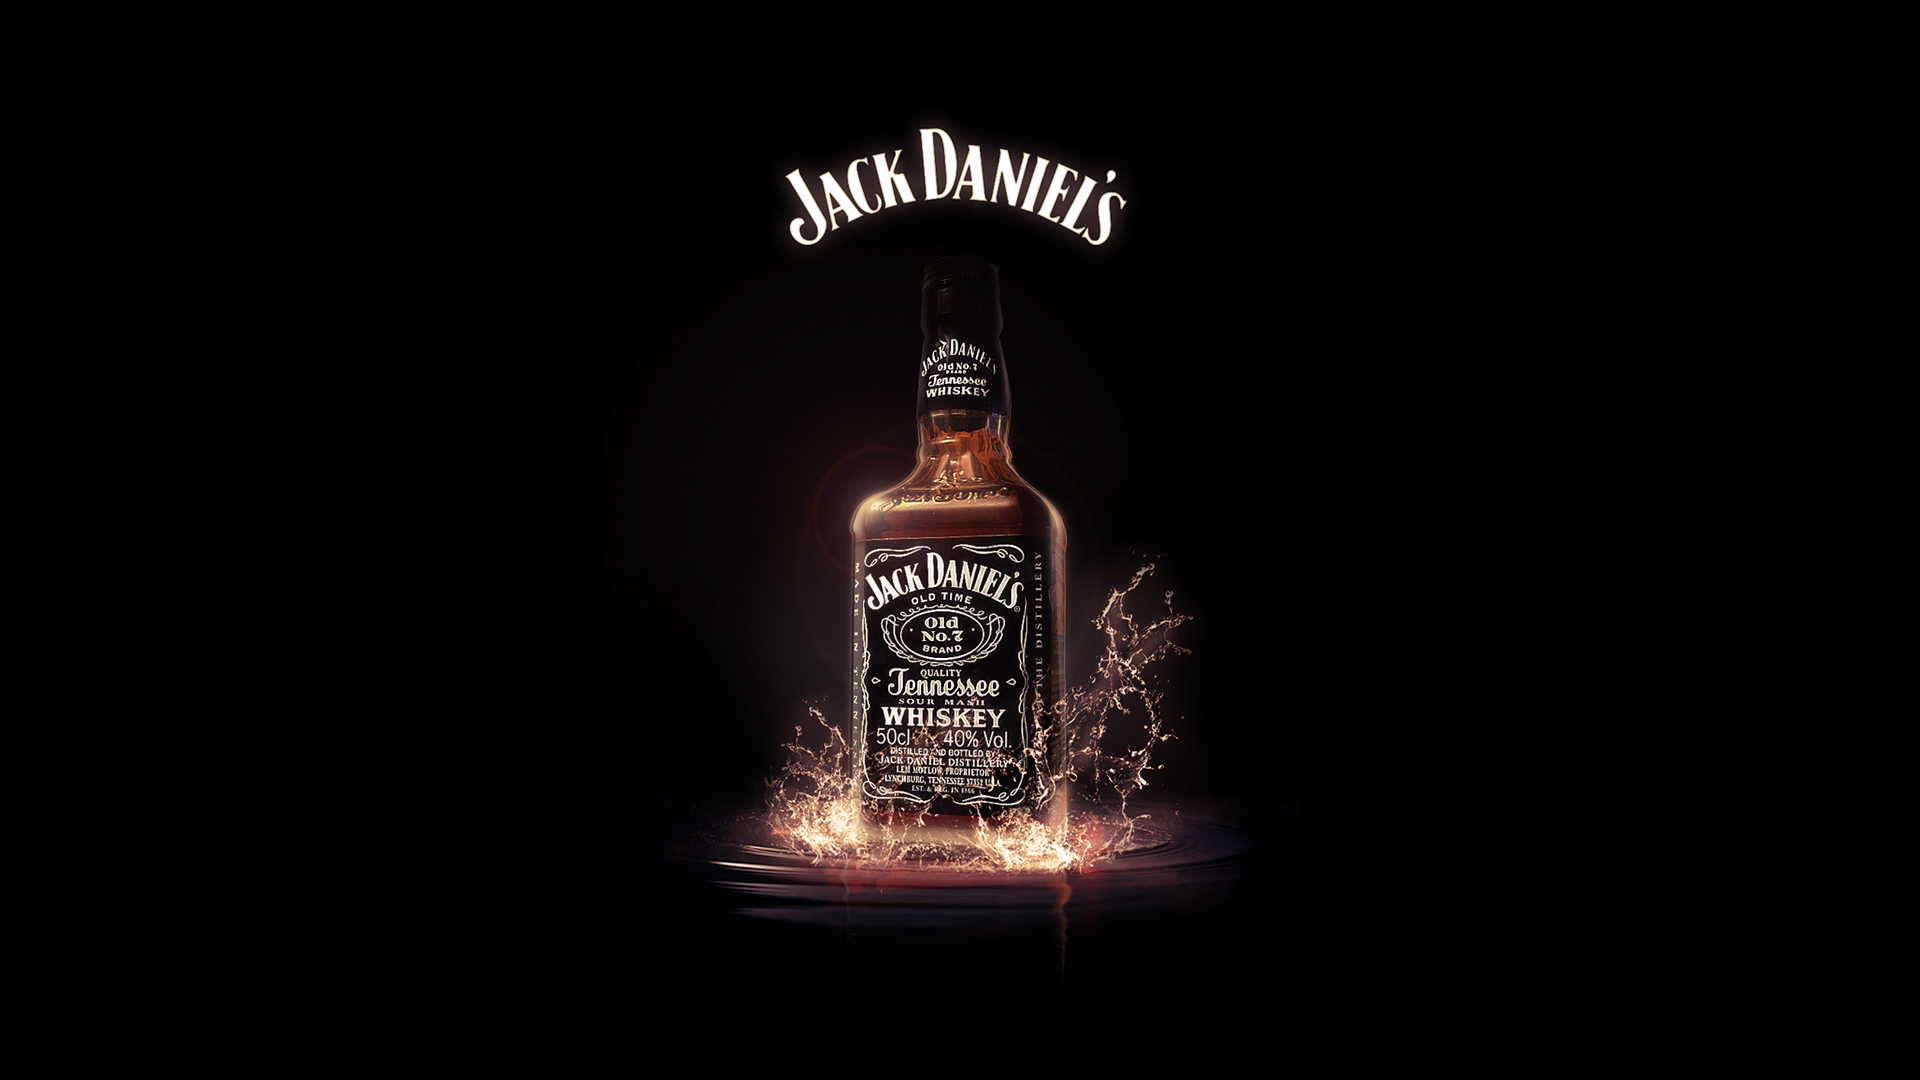 Jack daniels alcohol drinks hd wallpaper background picture download free hd for Photos jack daniels